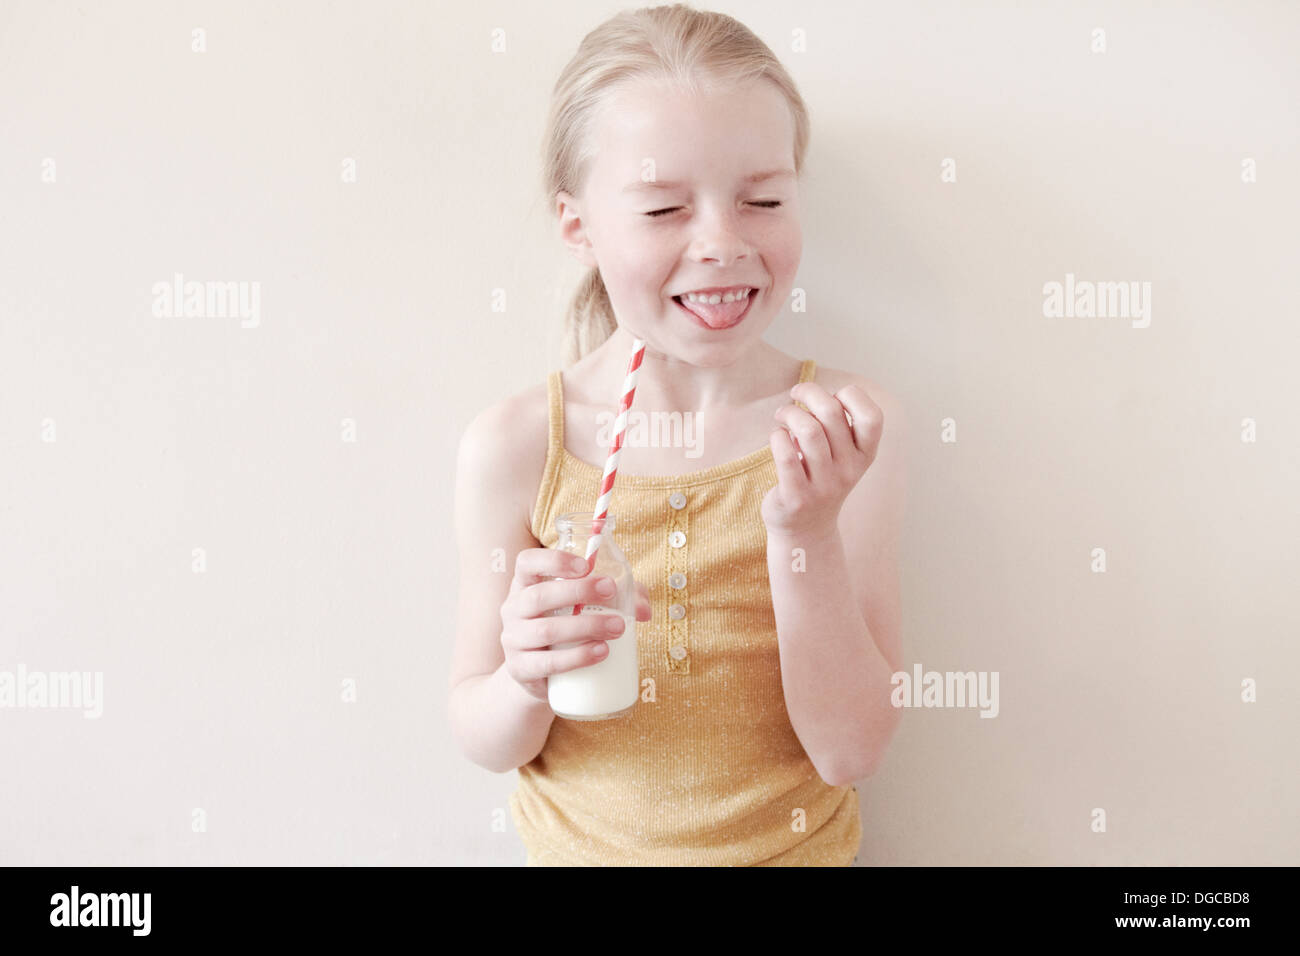 Young girl sticking tongue out and holding glass of milk - Stock Image